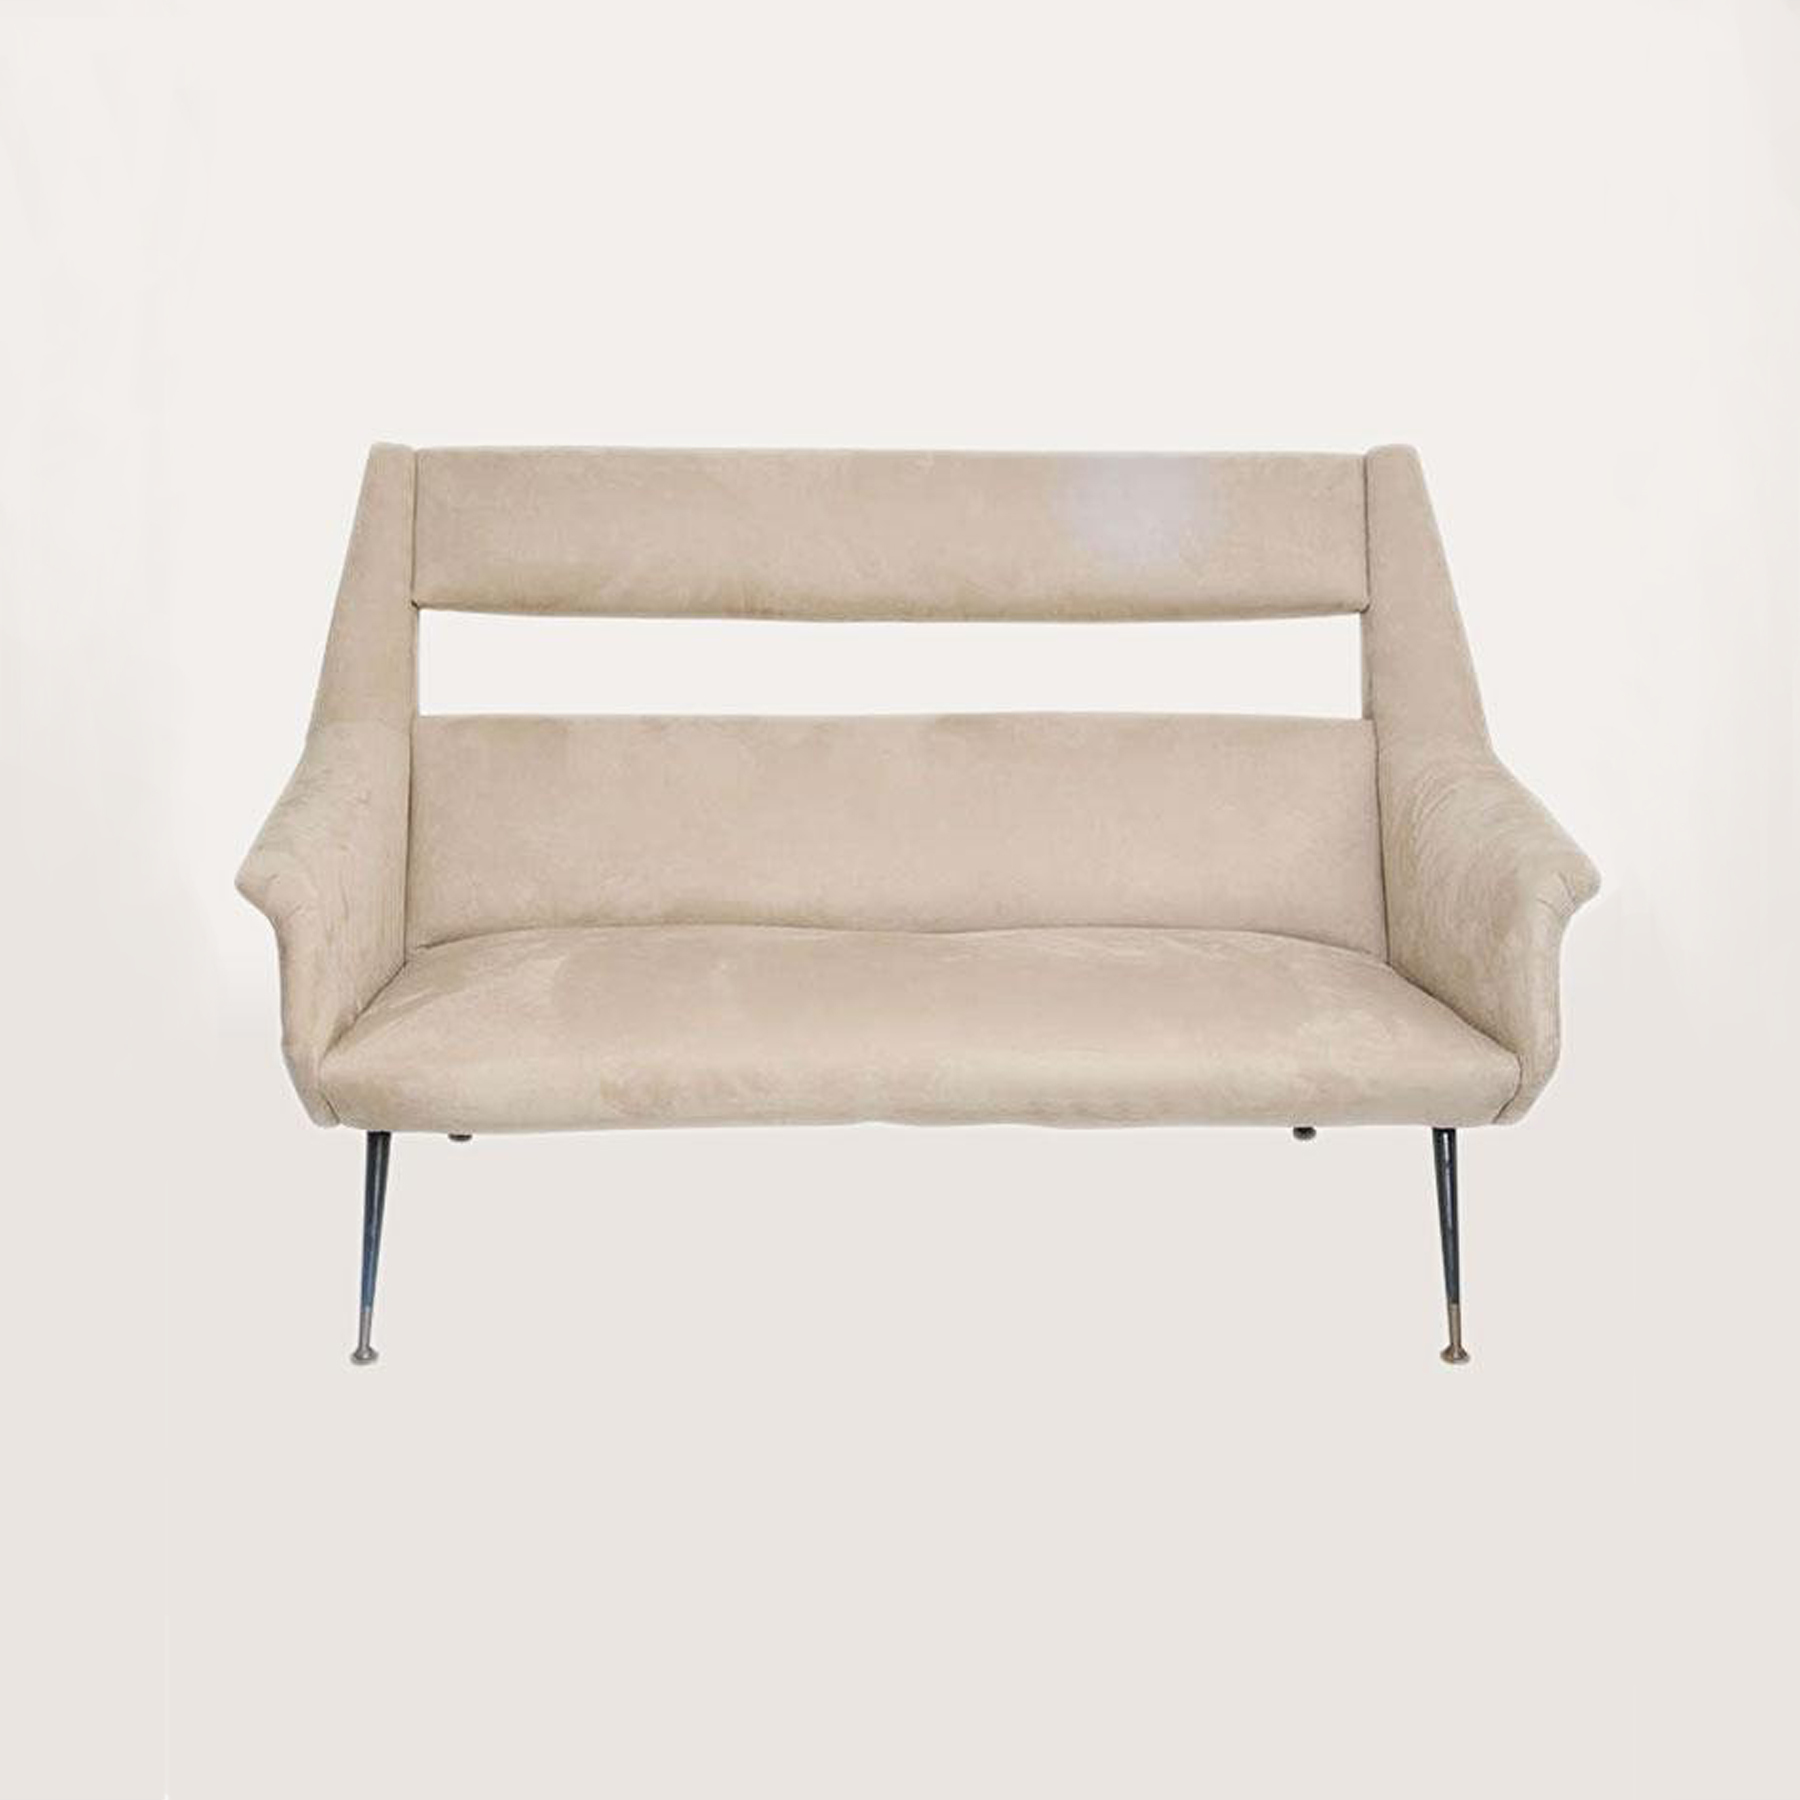 The image for Sofa